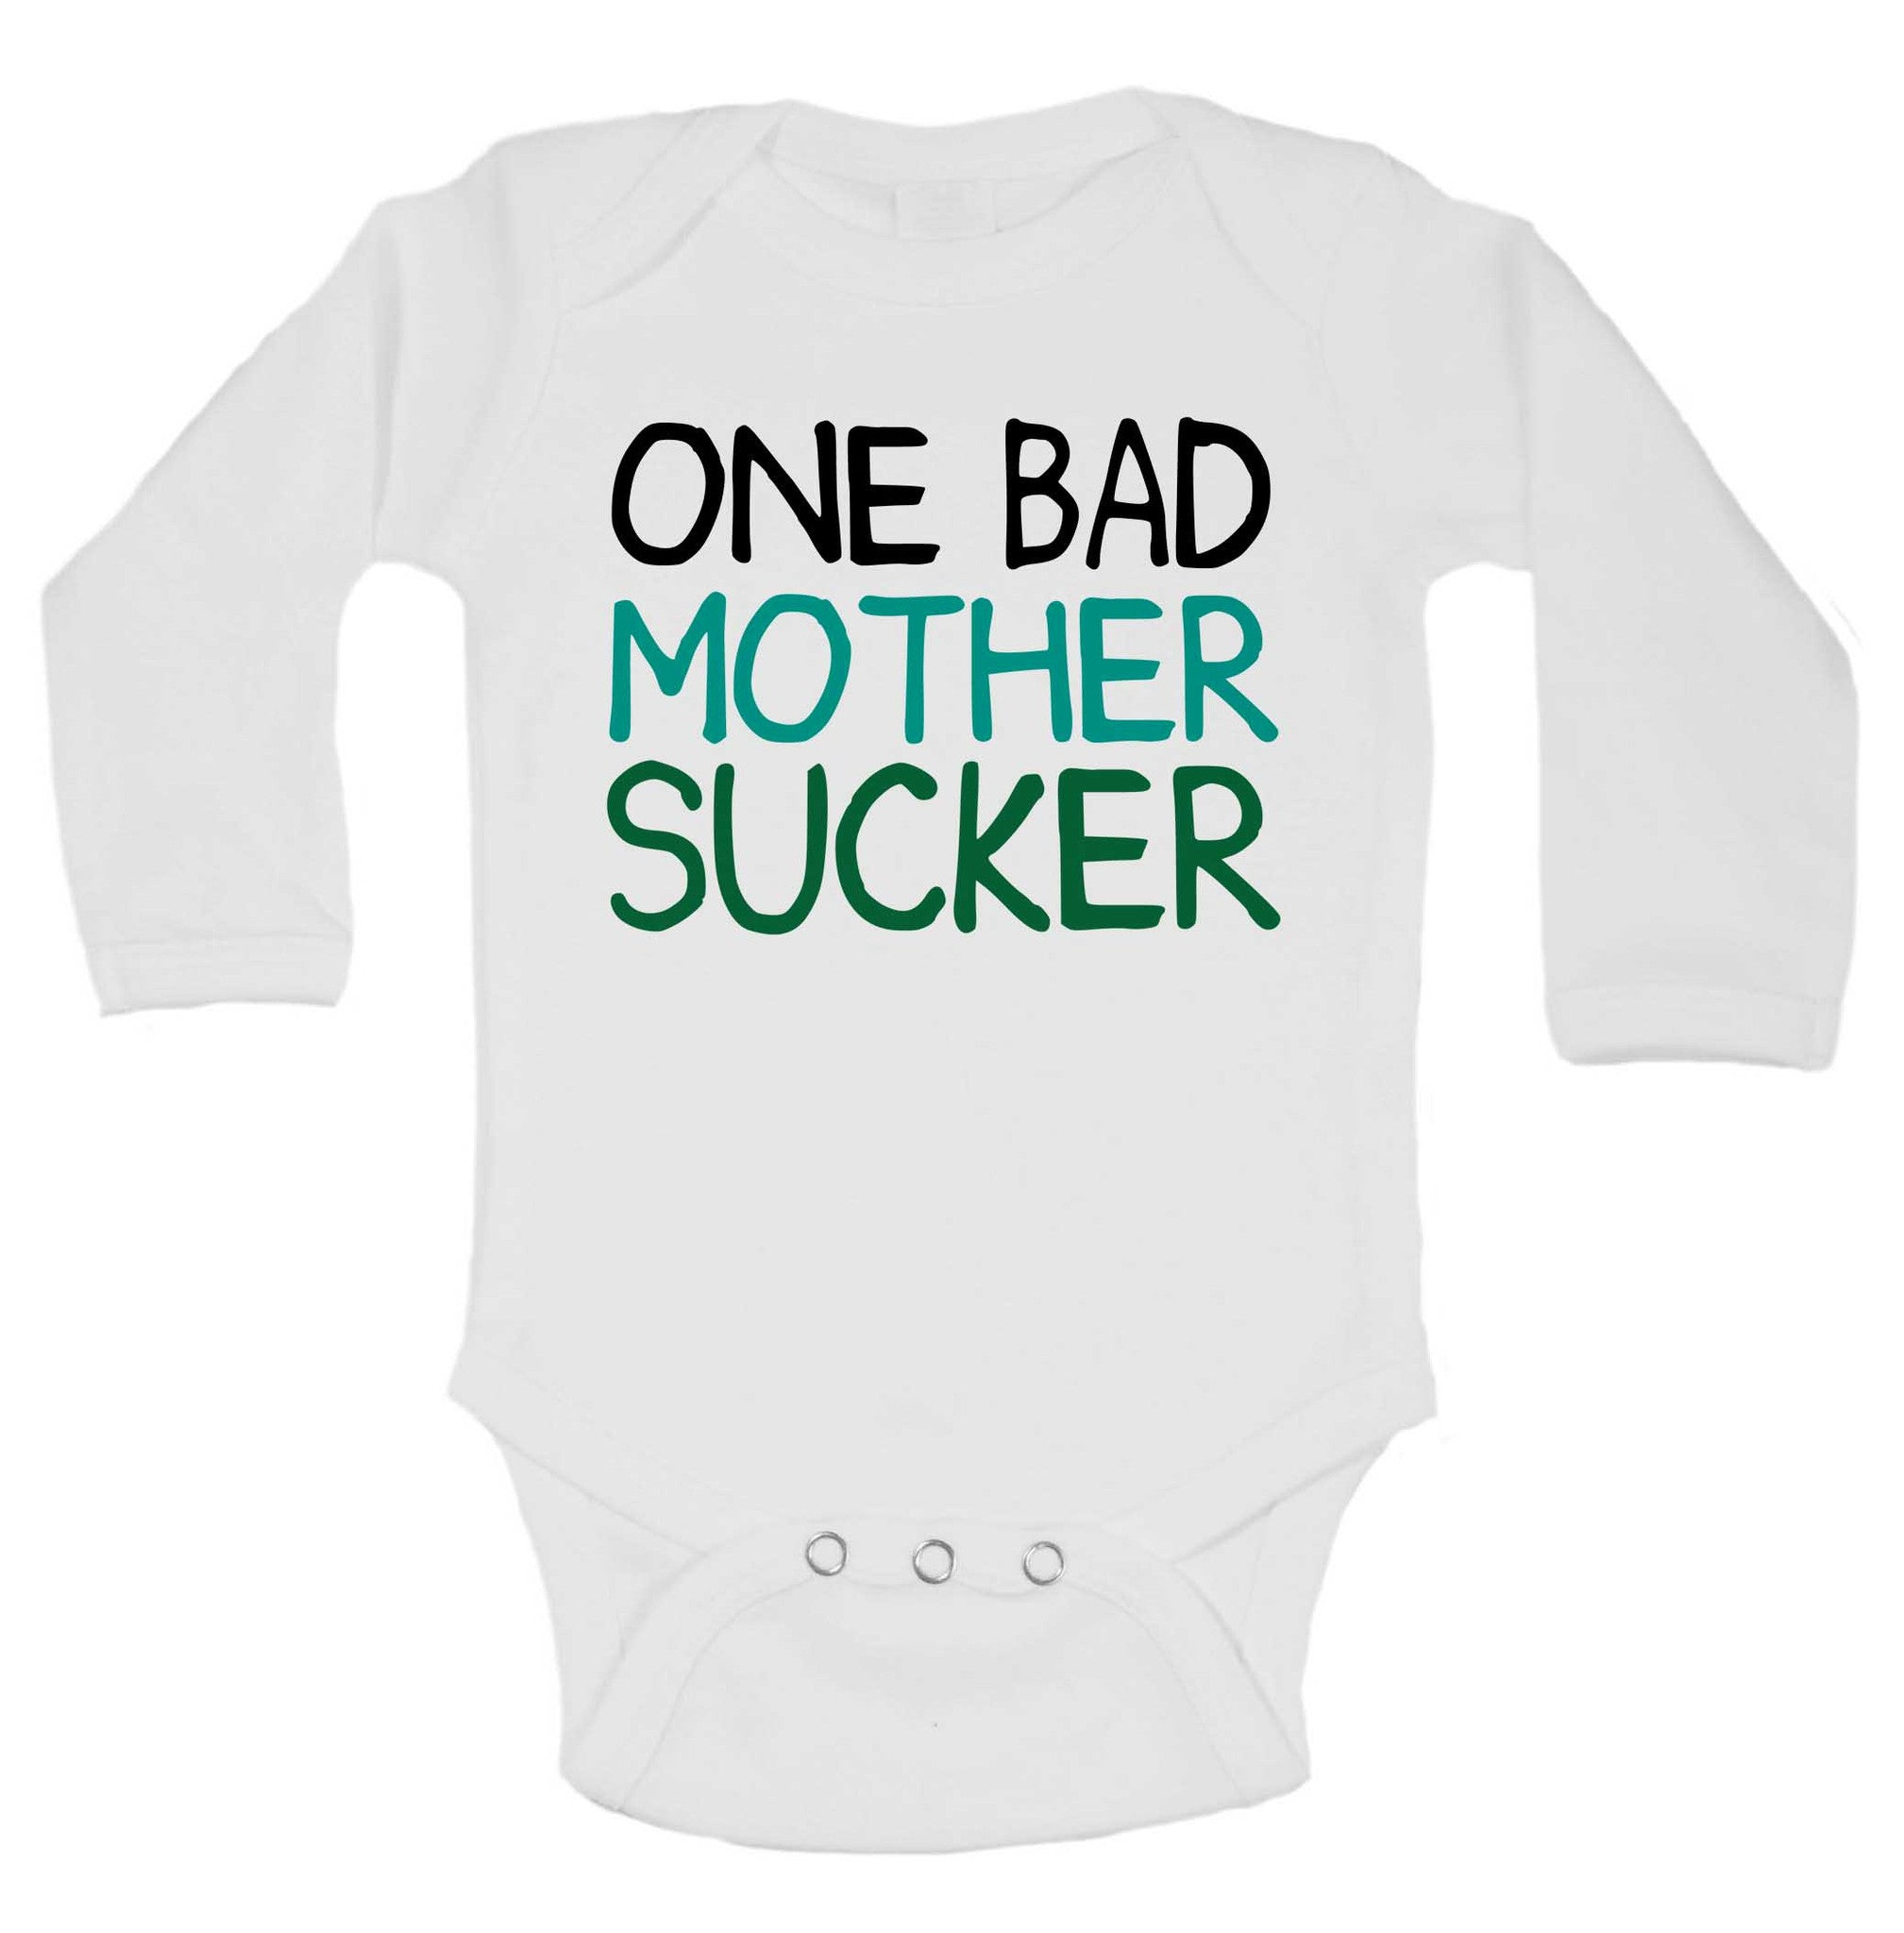 One Bad Mother Sucker Funny Kids Onesie - 183 - Funny Shirts Tank Tops Burnouts and Triblends  - 1